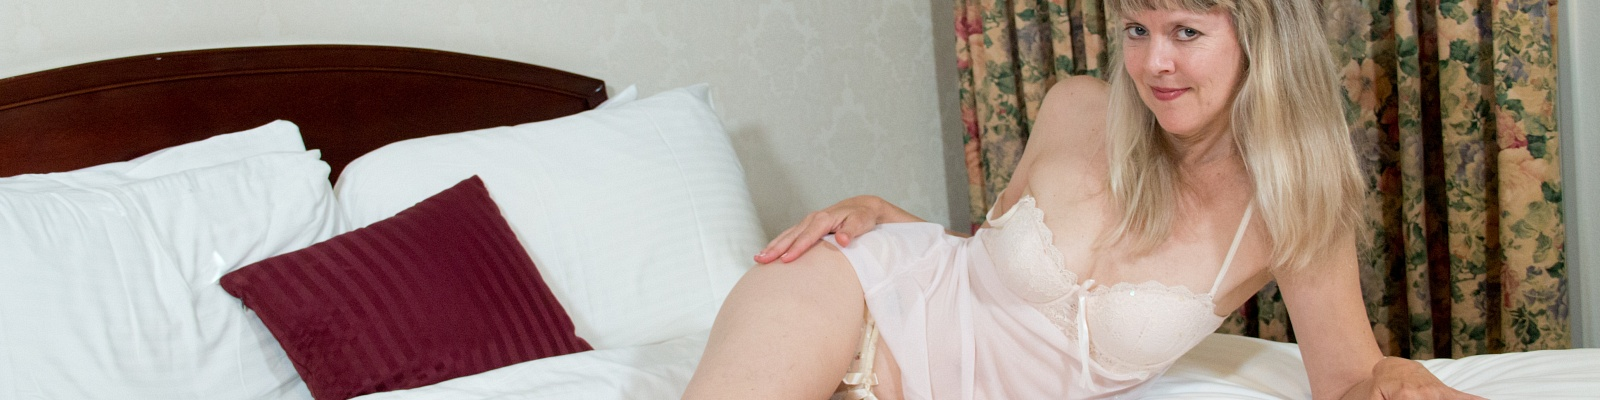 Adult Actress Jamie Foster's Cover Photo